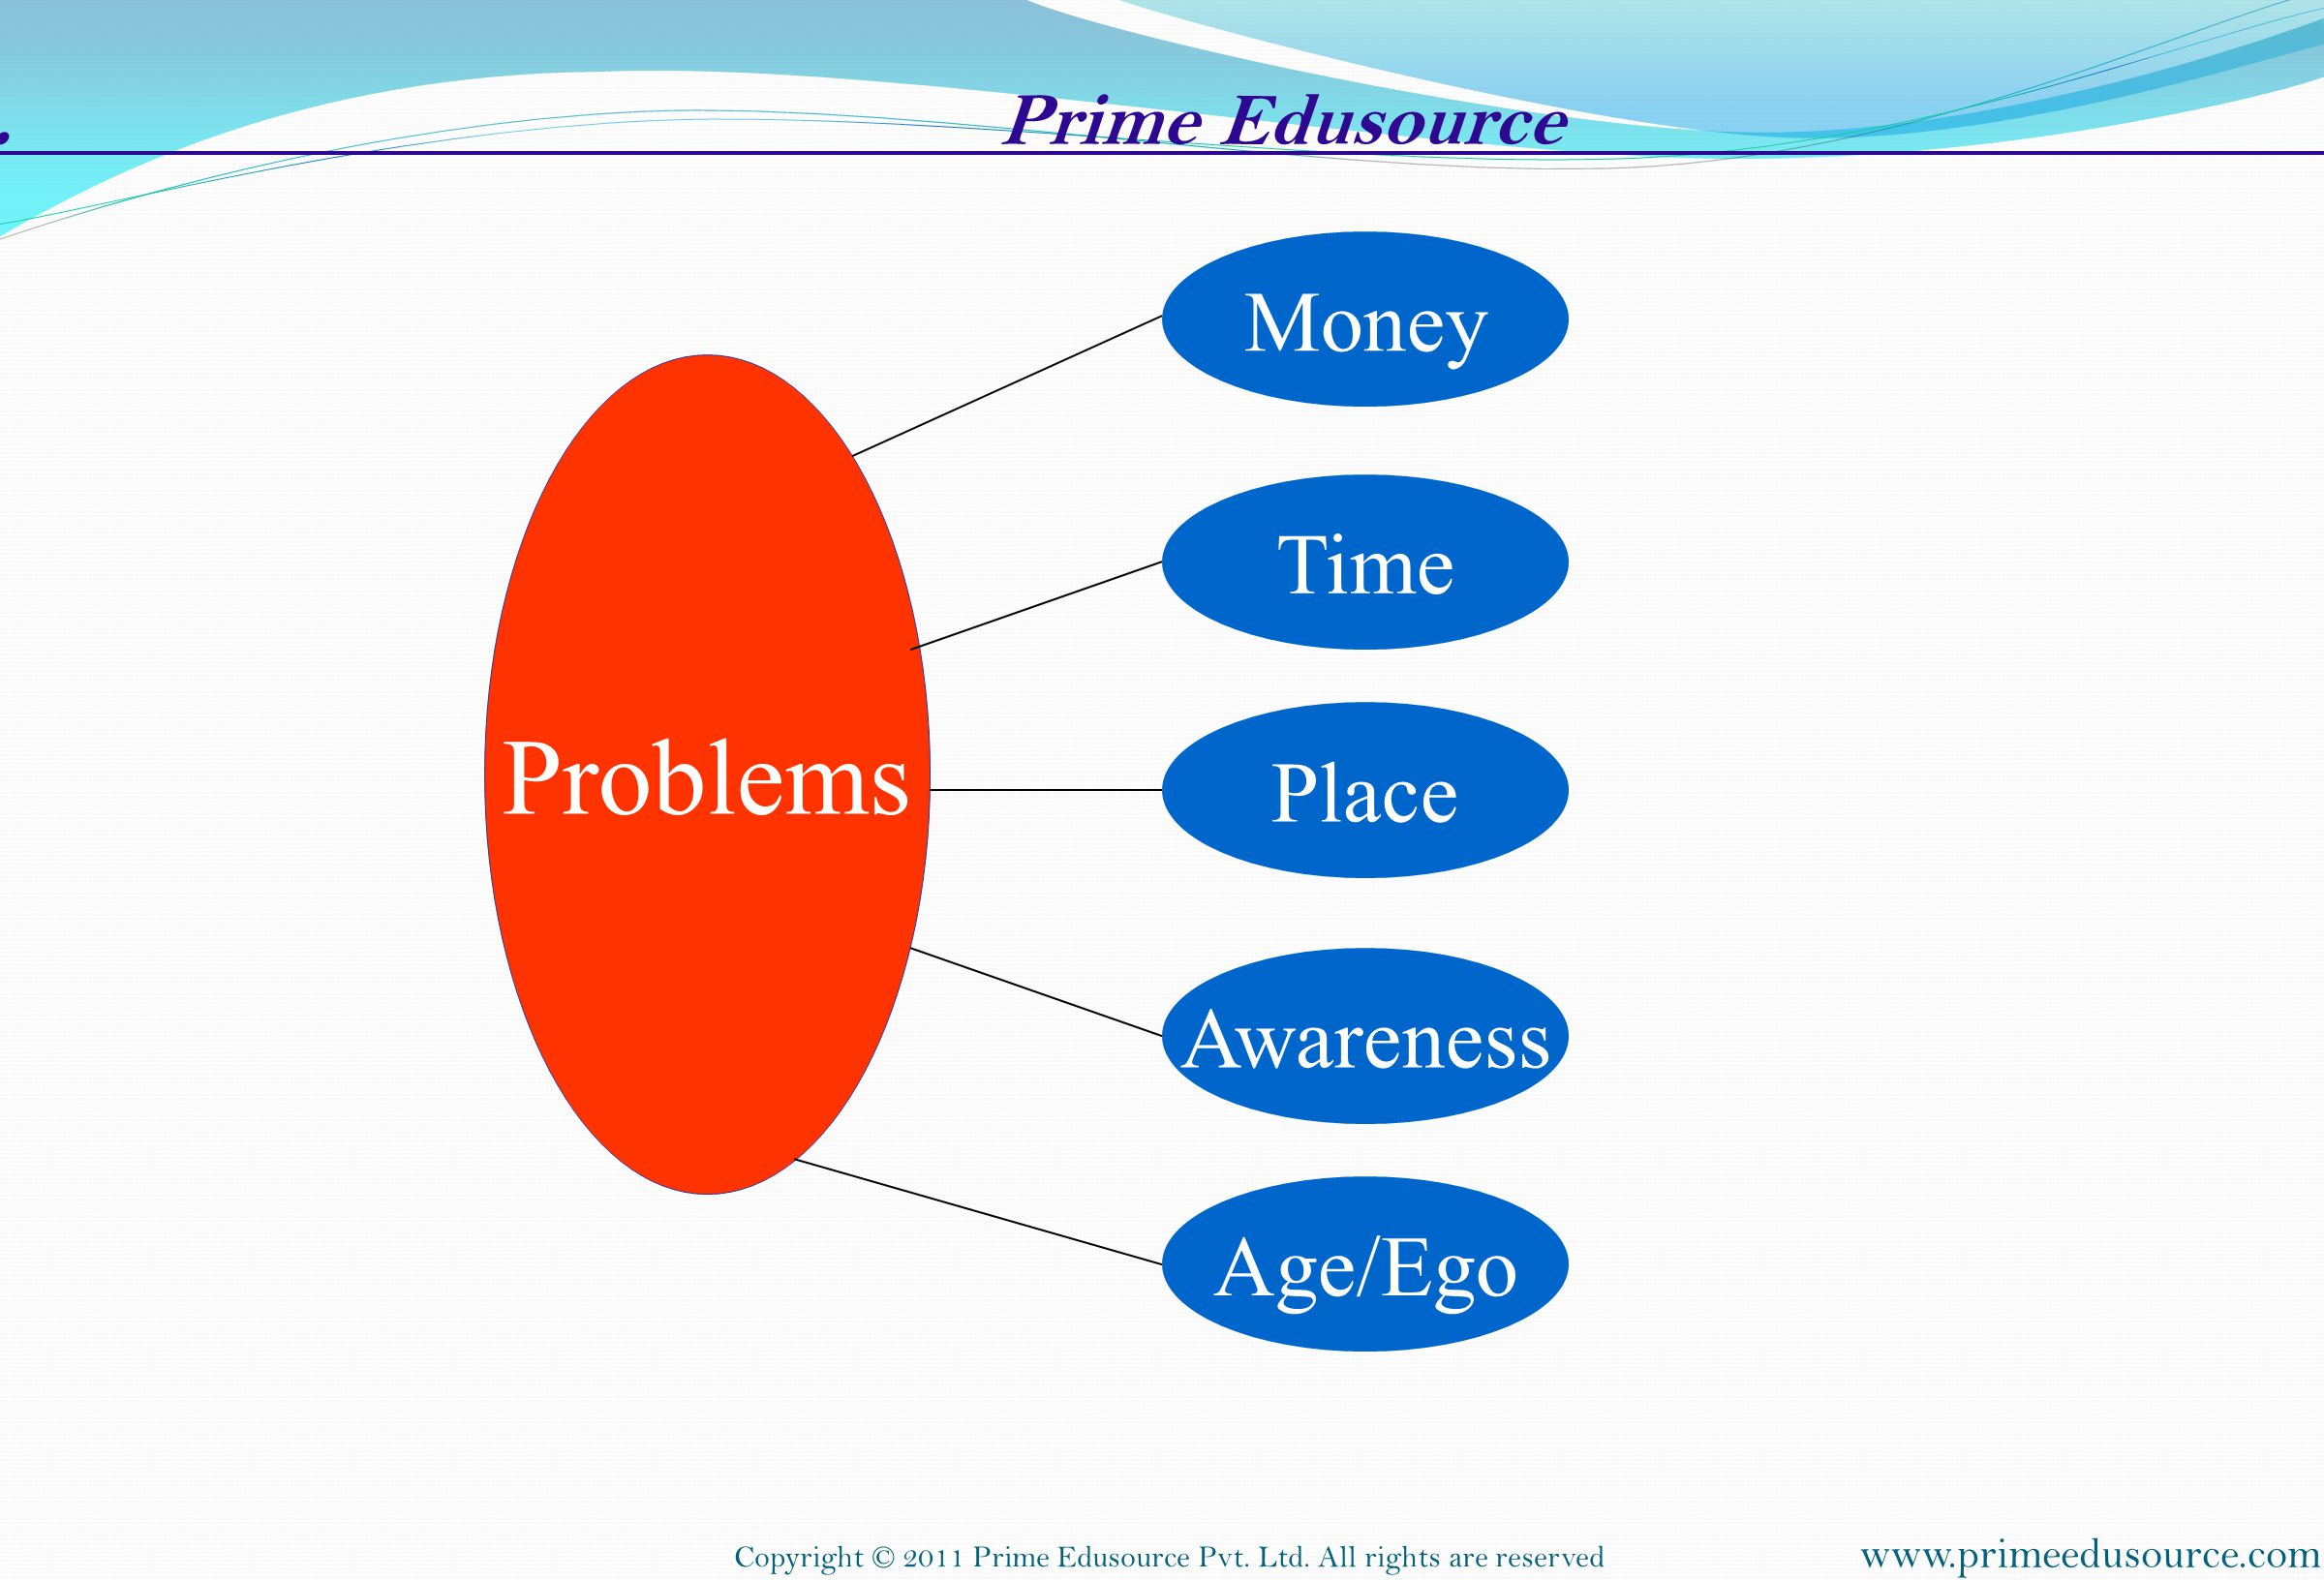 Problems . Prime Edusource . Money Time Place Awareness Age/Ego